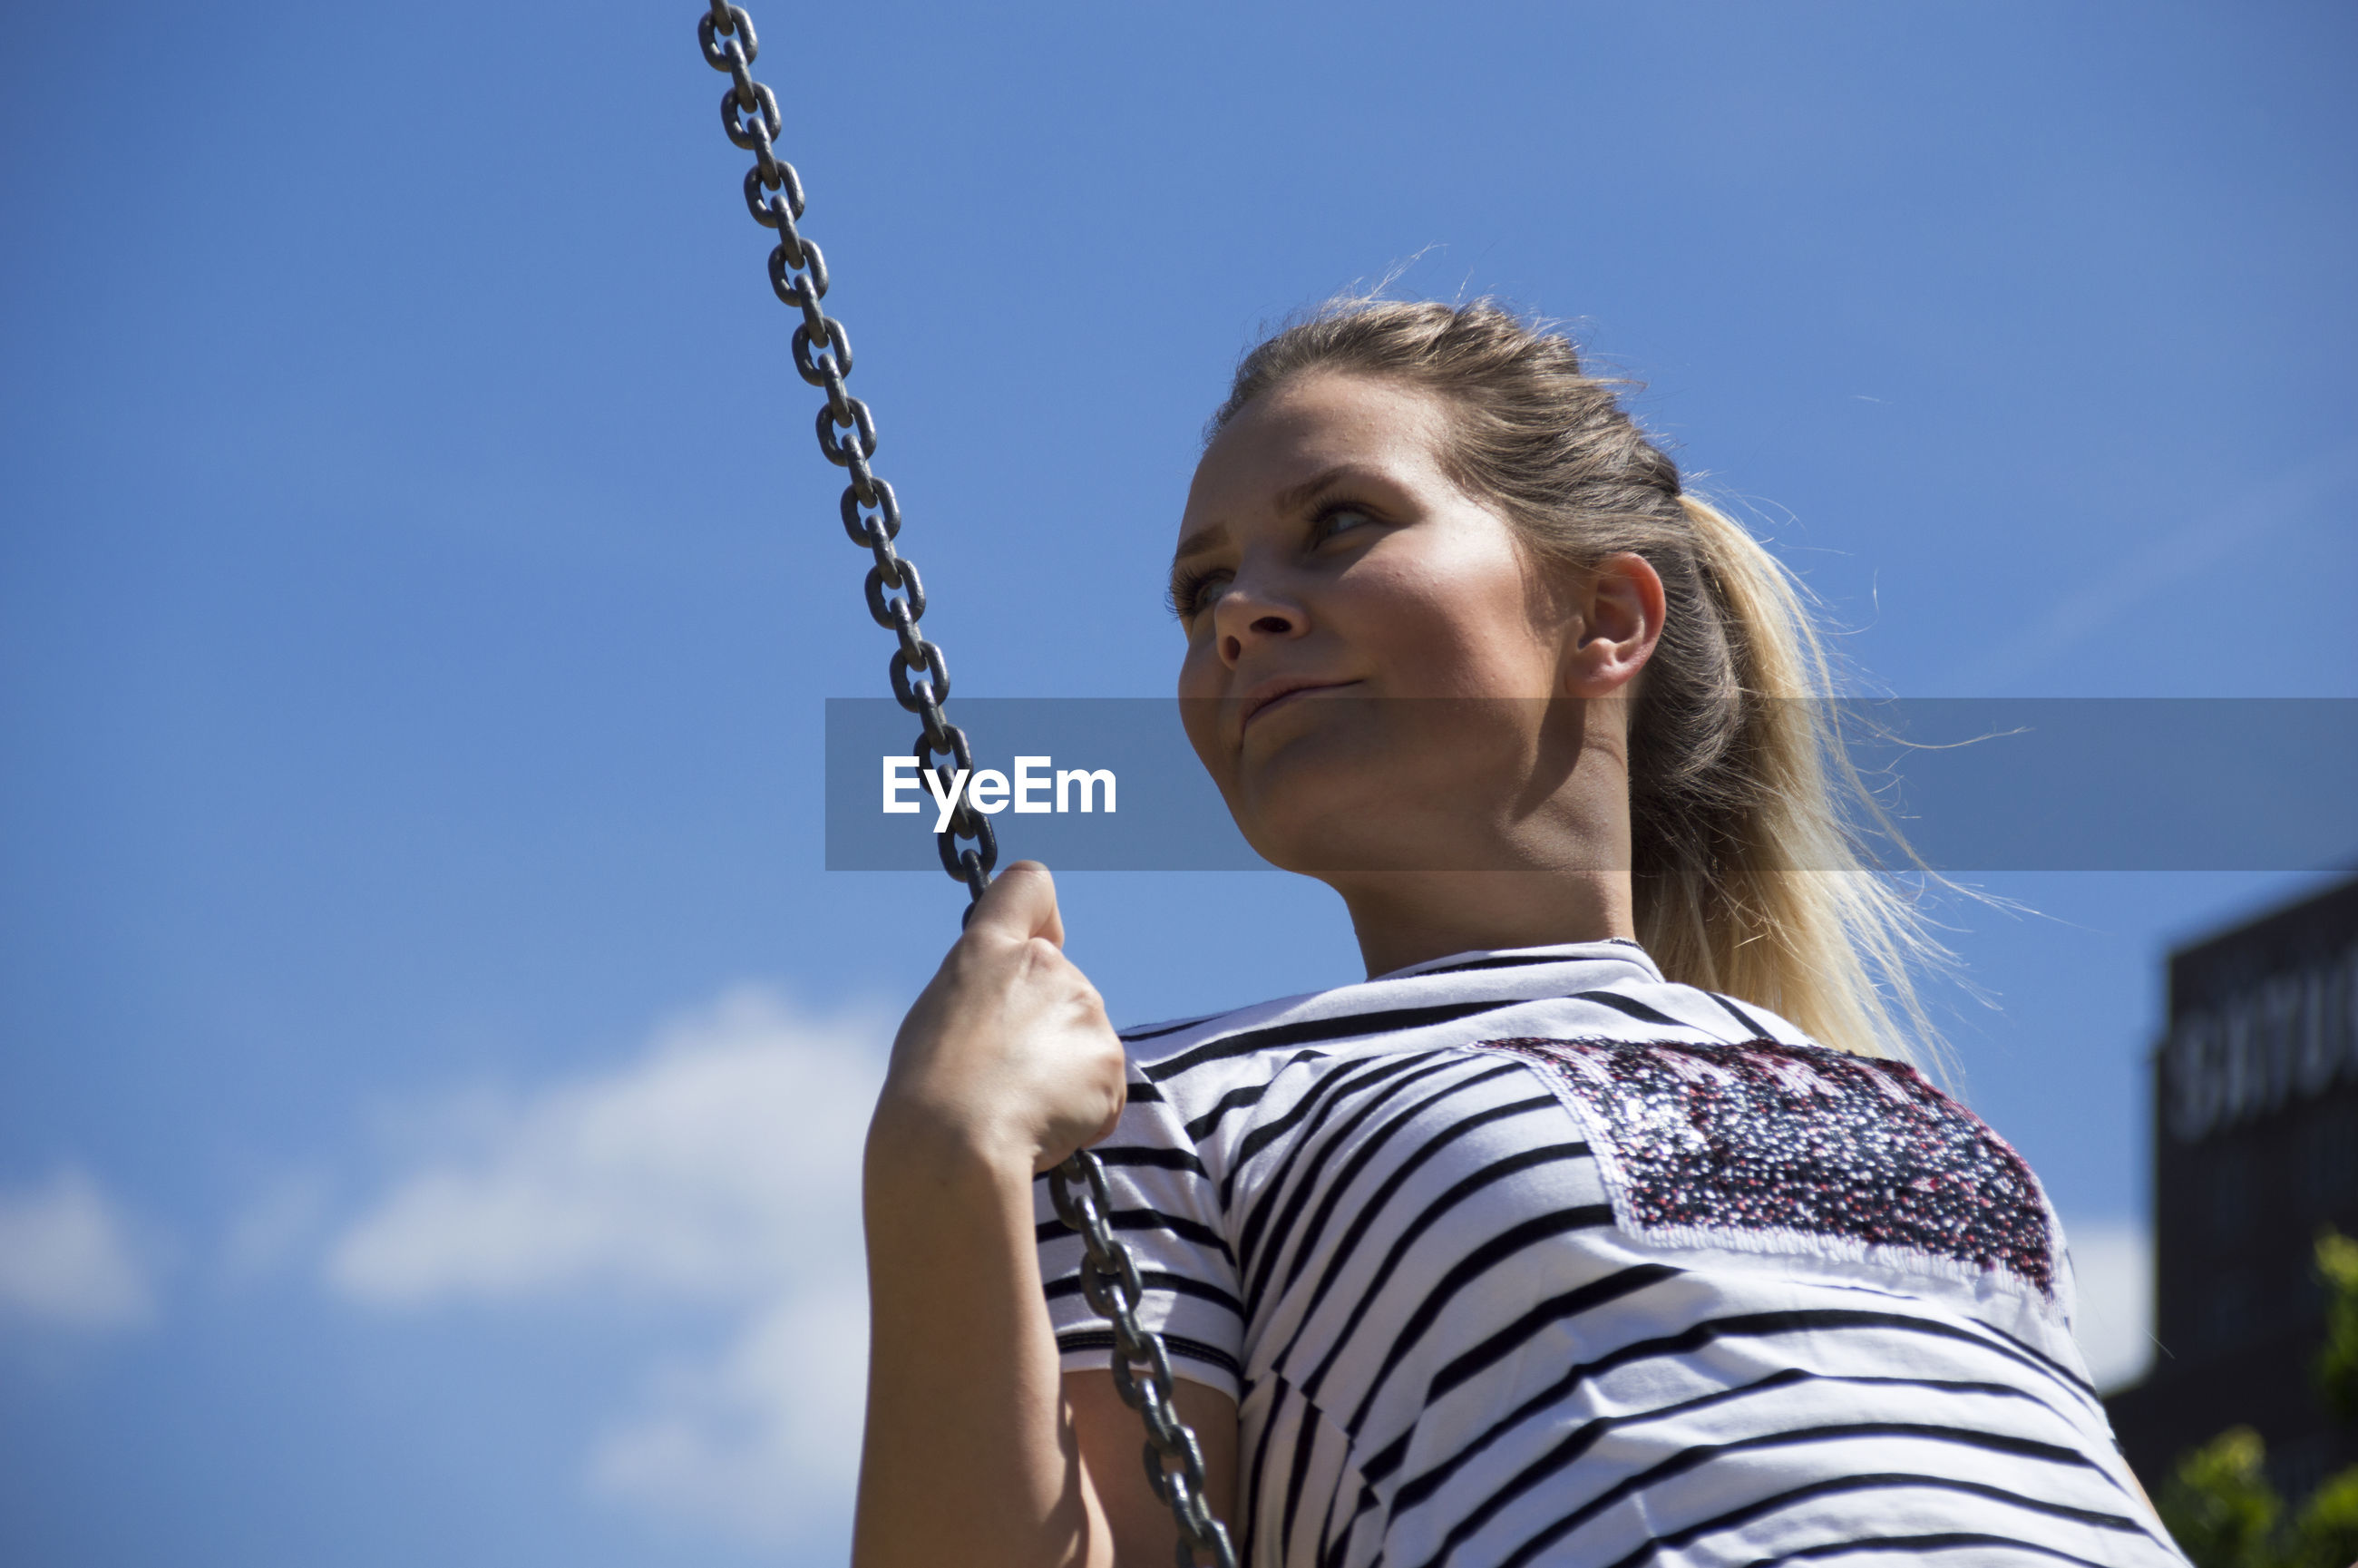 Low angle view of young woman looking away while swinging against sky